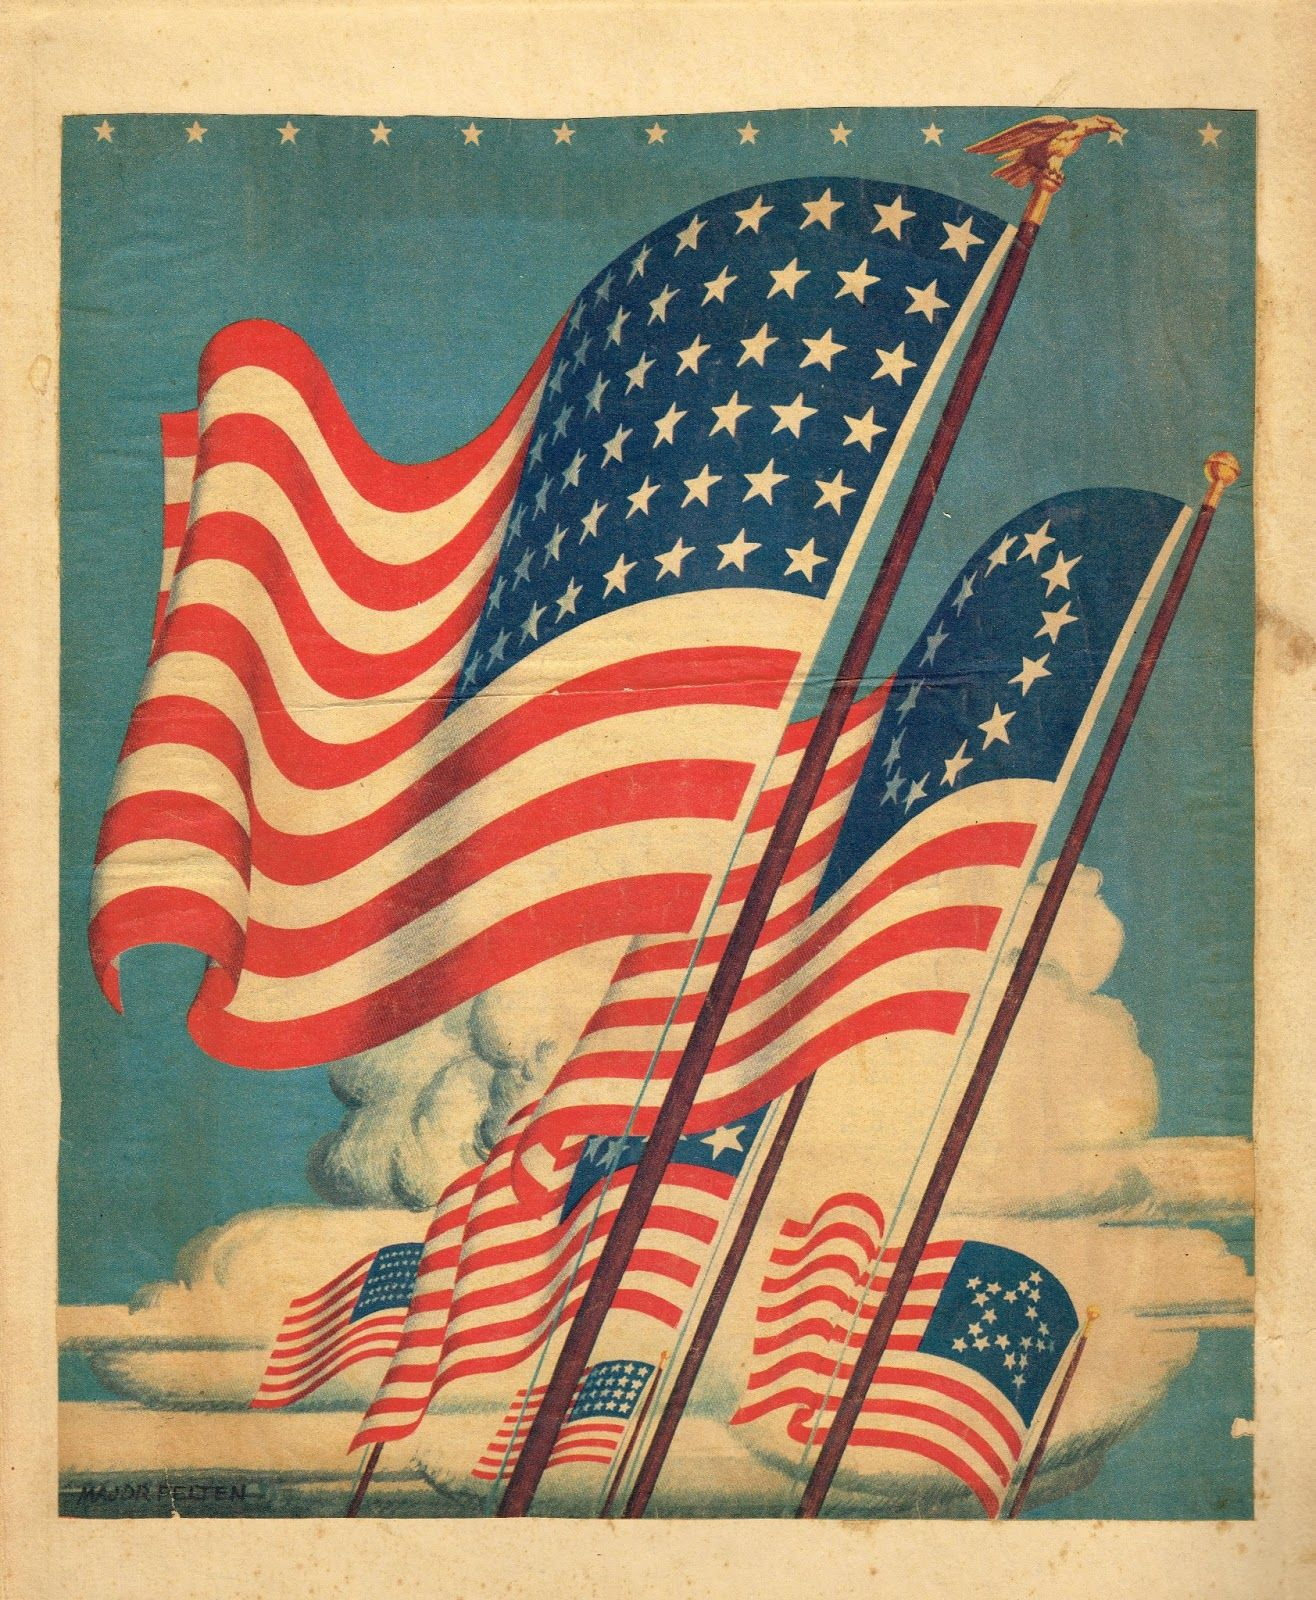 Antique Flag Image Printable For July 4th Decor